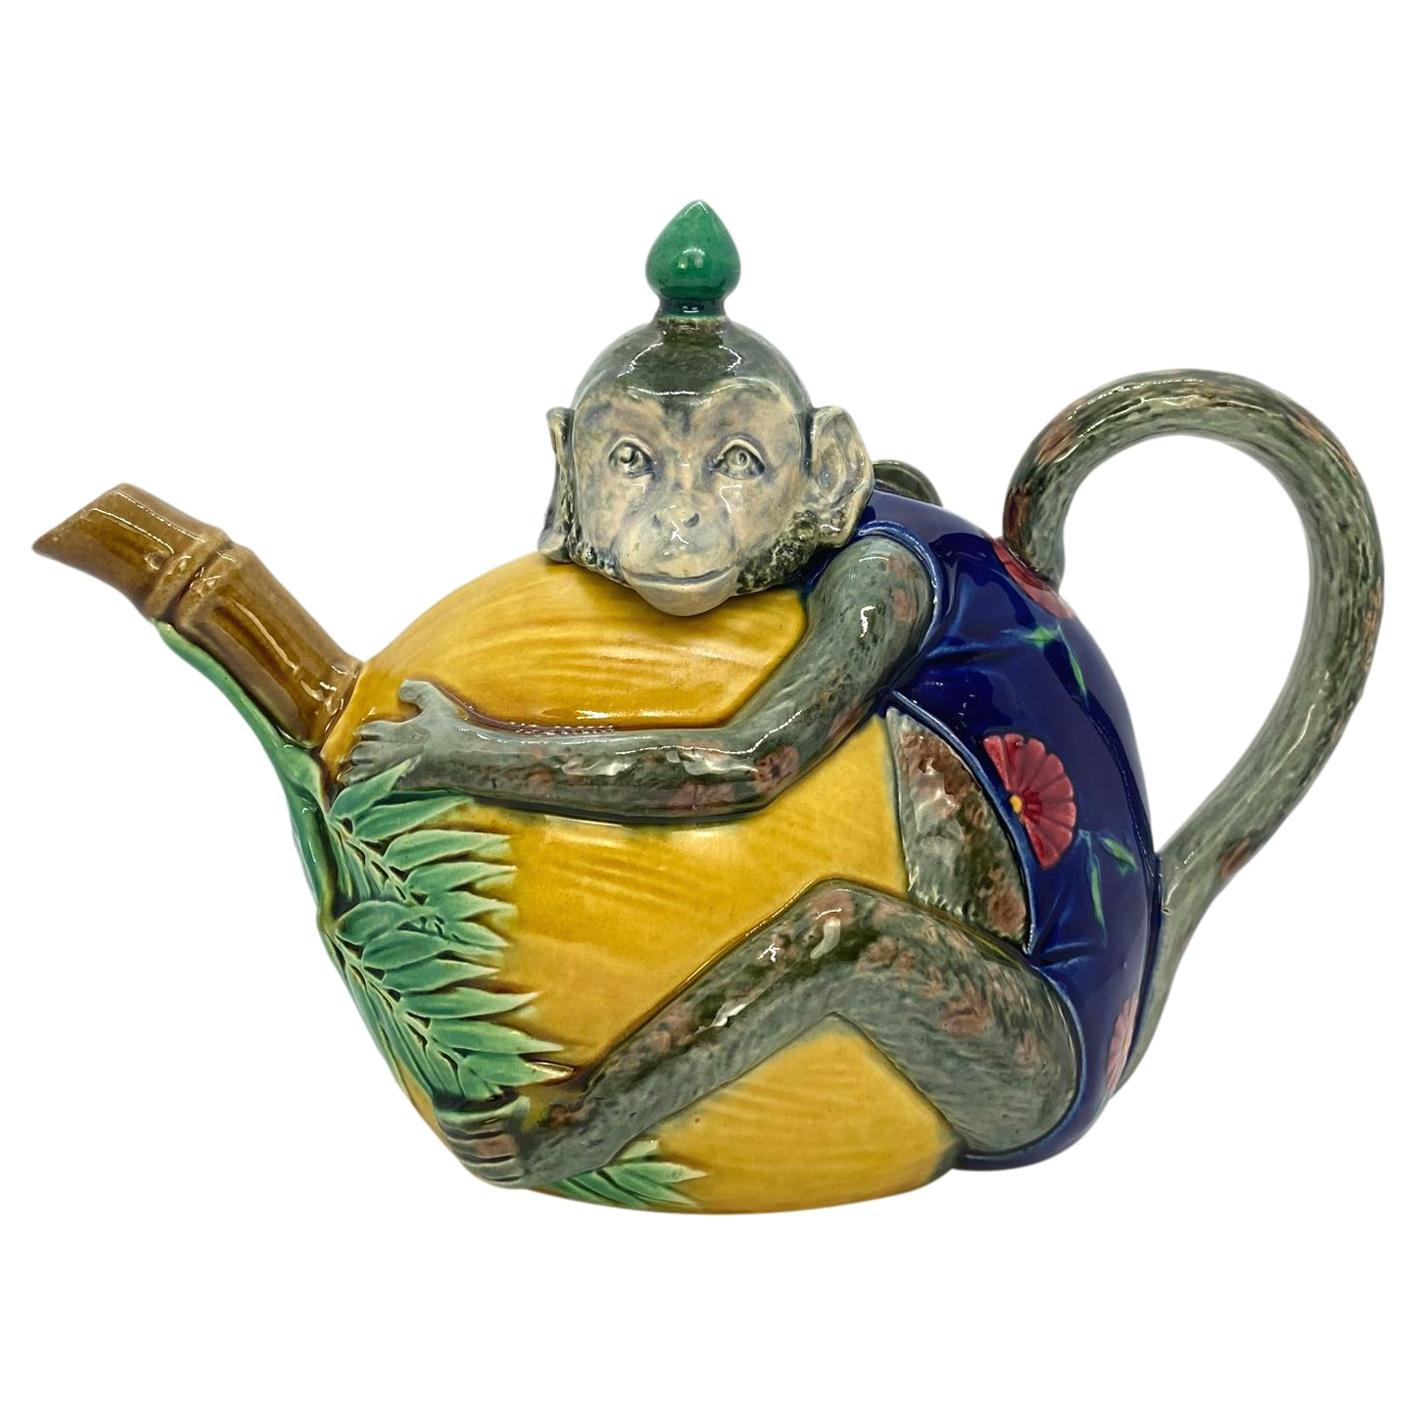 Minton Majolica Teapot, Beautifully Glazed Monkey with a Coconut, Dated 1874